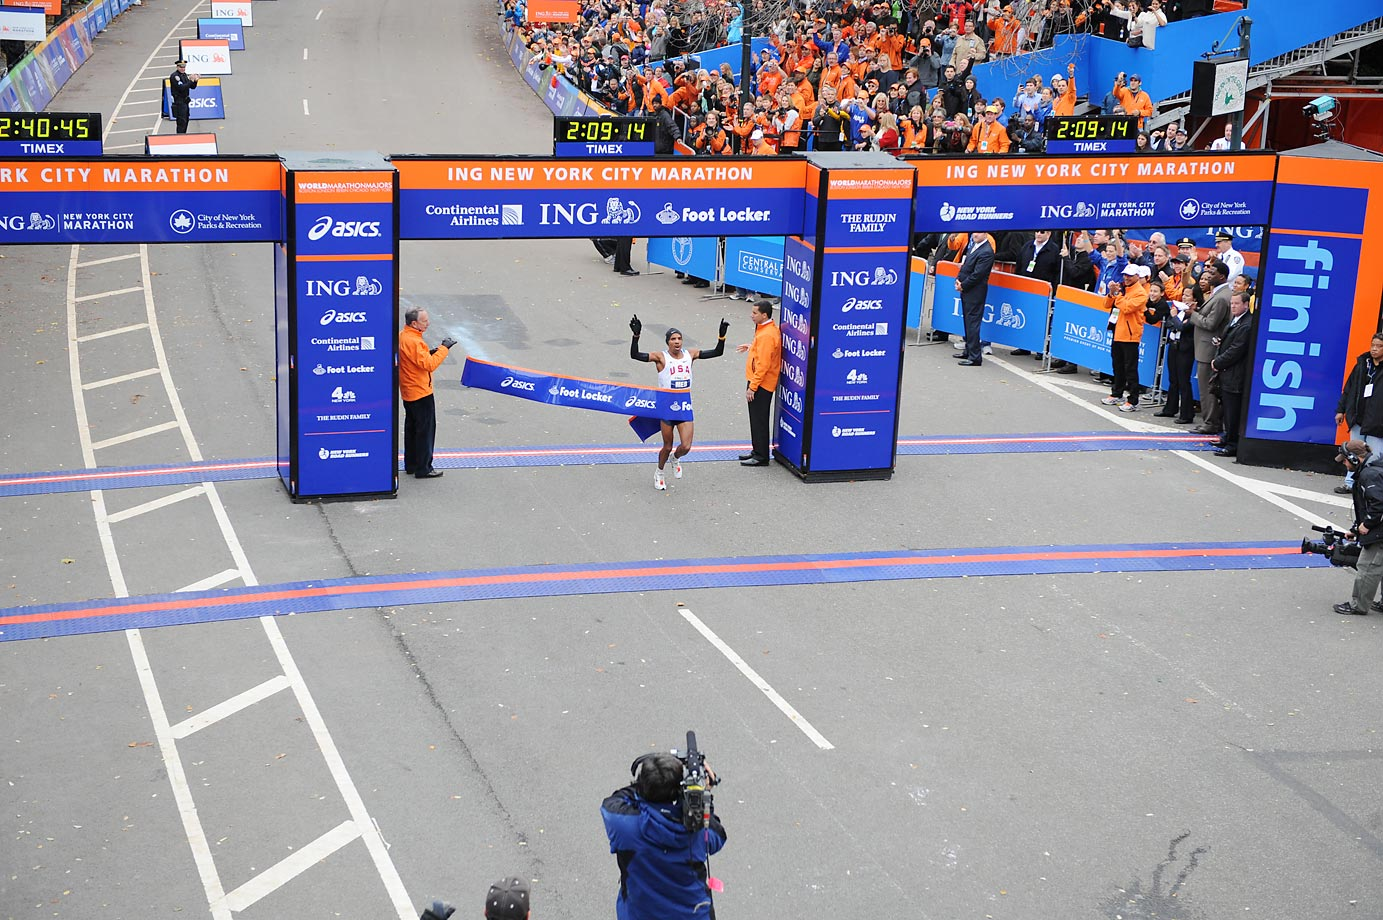 Meb Keflezighi of the U.S., crosses the finish line, becoming the first American to win the race since 1982.  His time was 02:09:15.